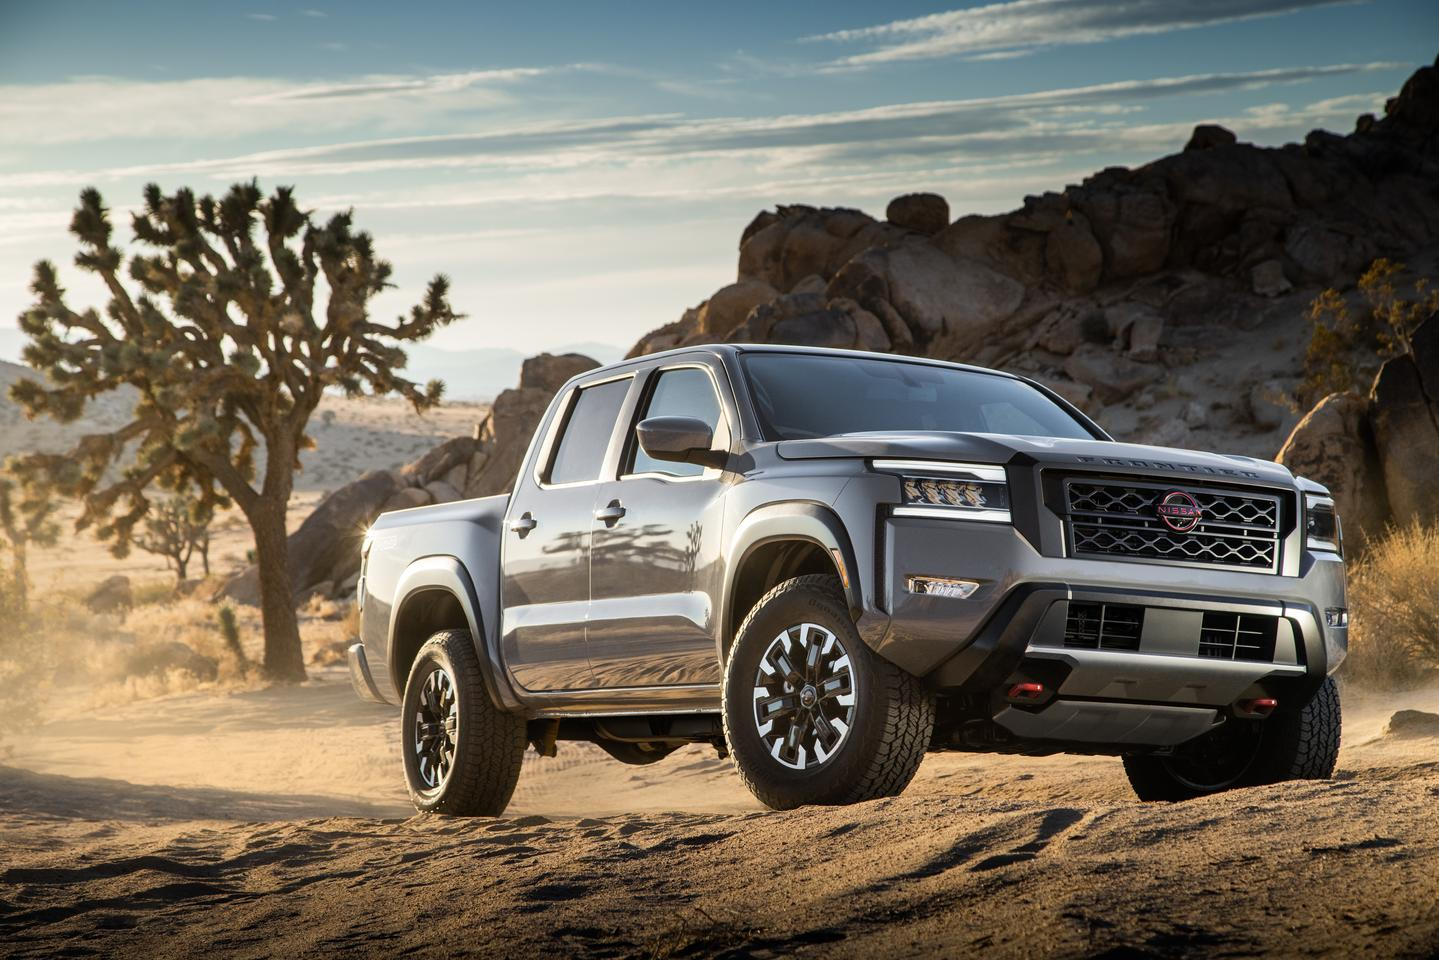 The long-lived Nissan Frontier has finally seen a full overhaul in design for the 2022 model year